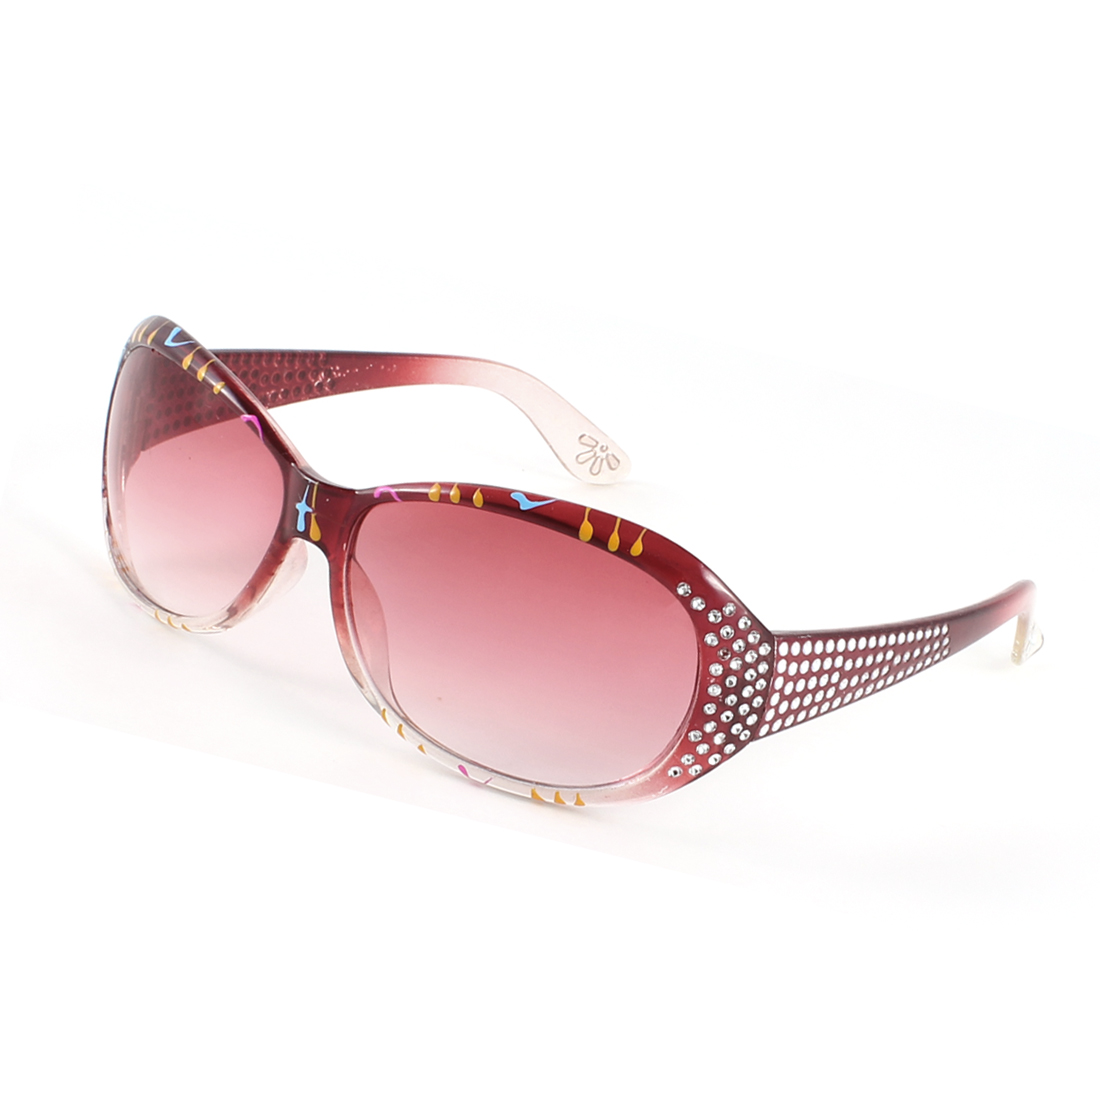 Lady Outdoor Orange Red Arm Full Frame Tinted Lens Rhinestone Inlaid Sunglasses